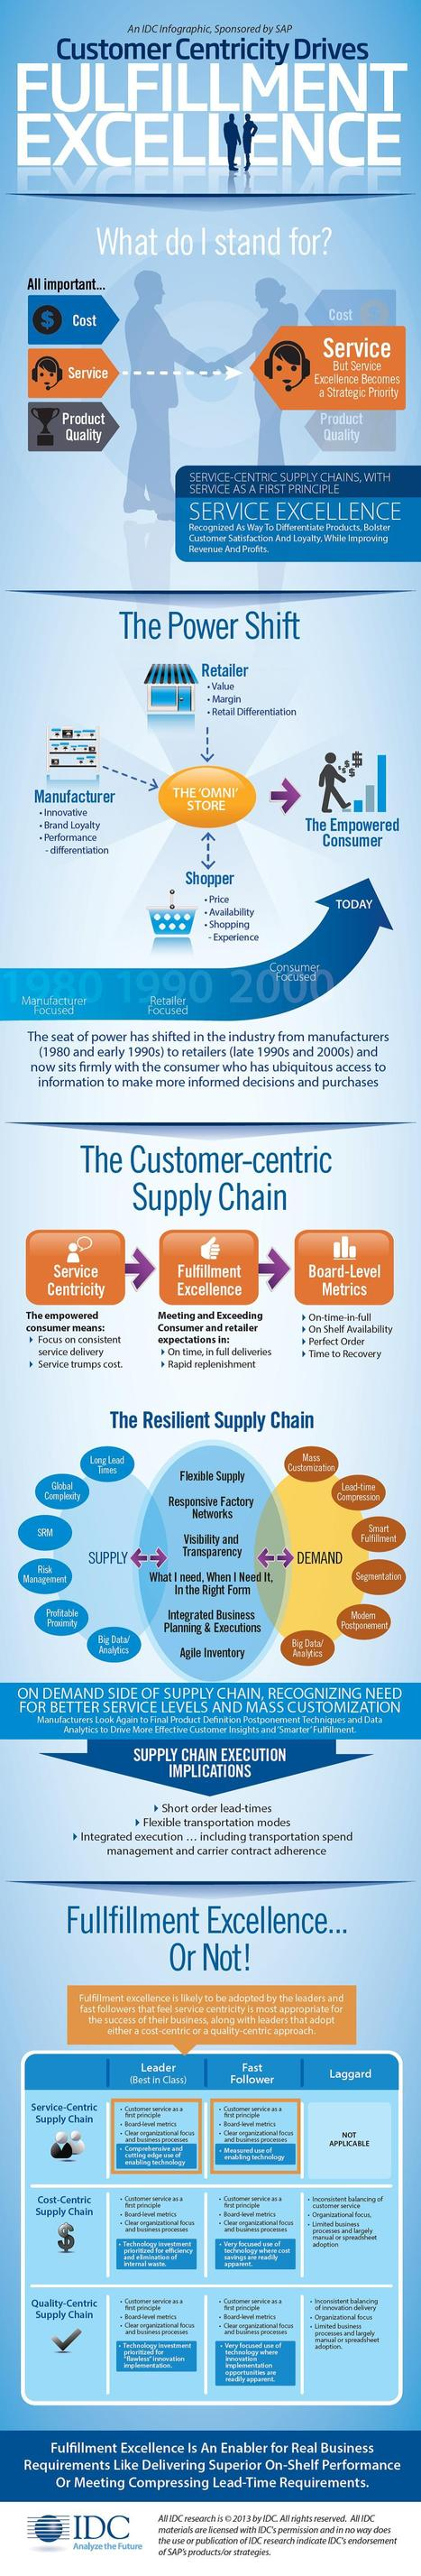 Service-Centric Fulfillment In The Age Of Empowered Consumers [INFOGRAPHIC] | cx- Customer Experience | Scoop.it